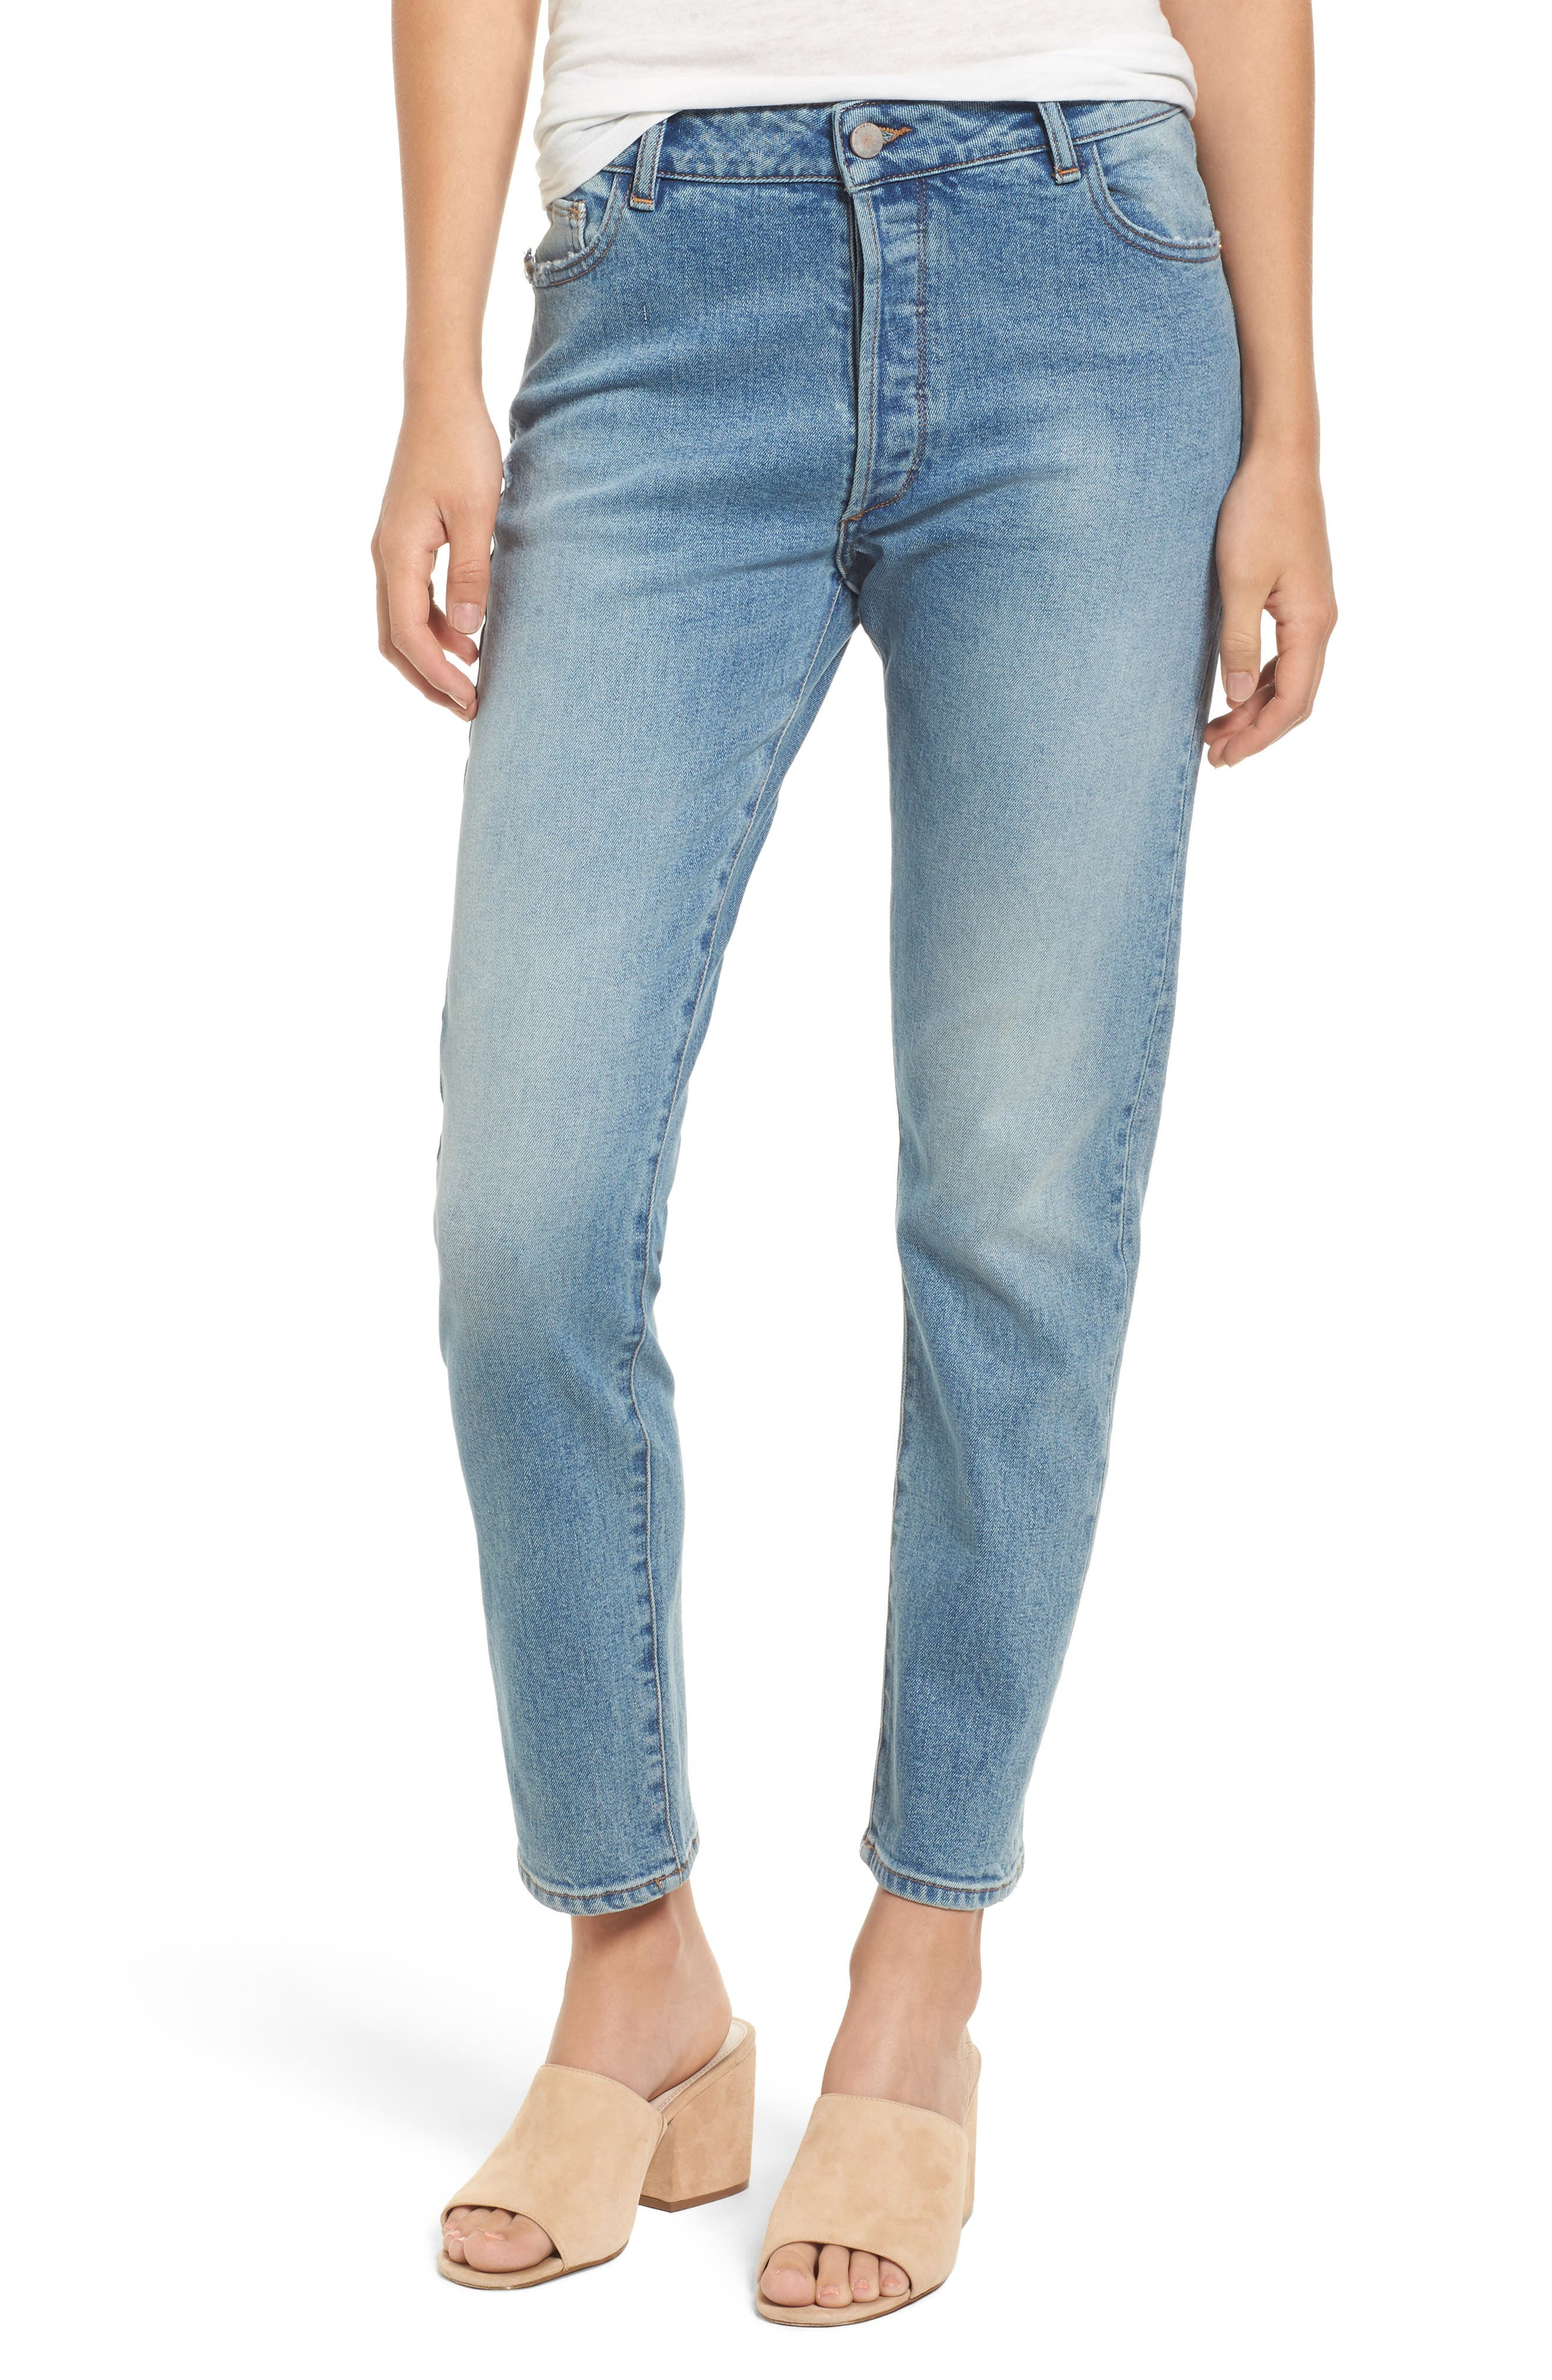 Main Image - DL1961 Bella High Waist Ankle Skinny Jeans (Sonata)